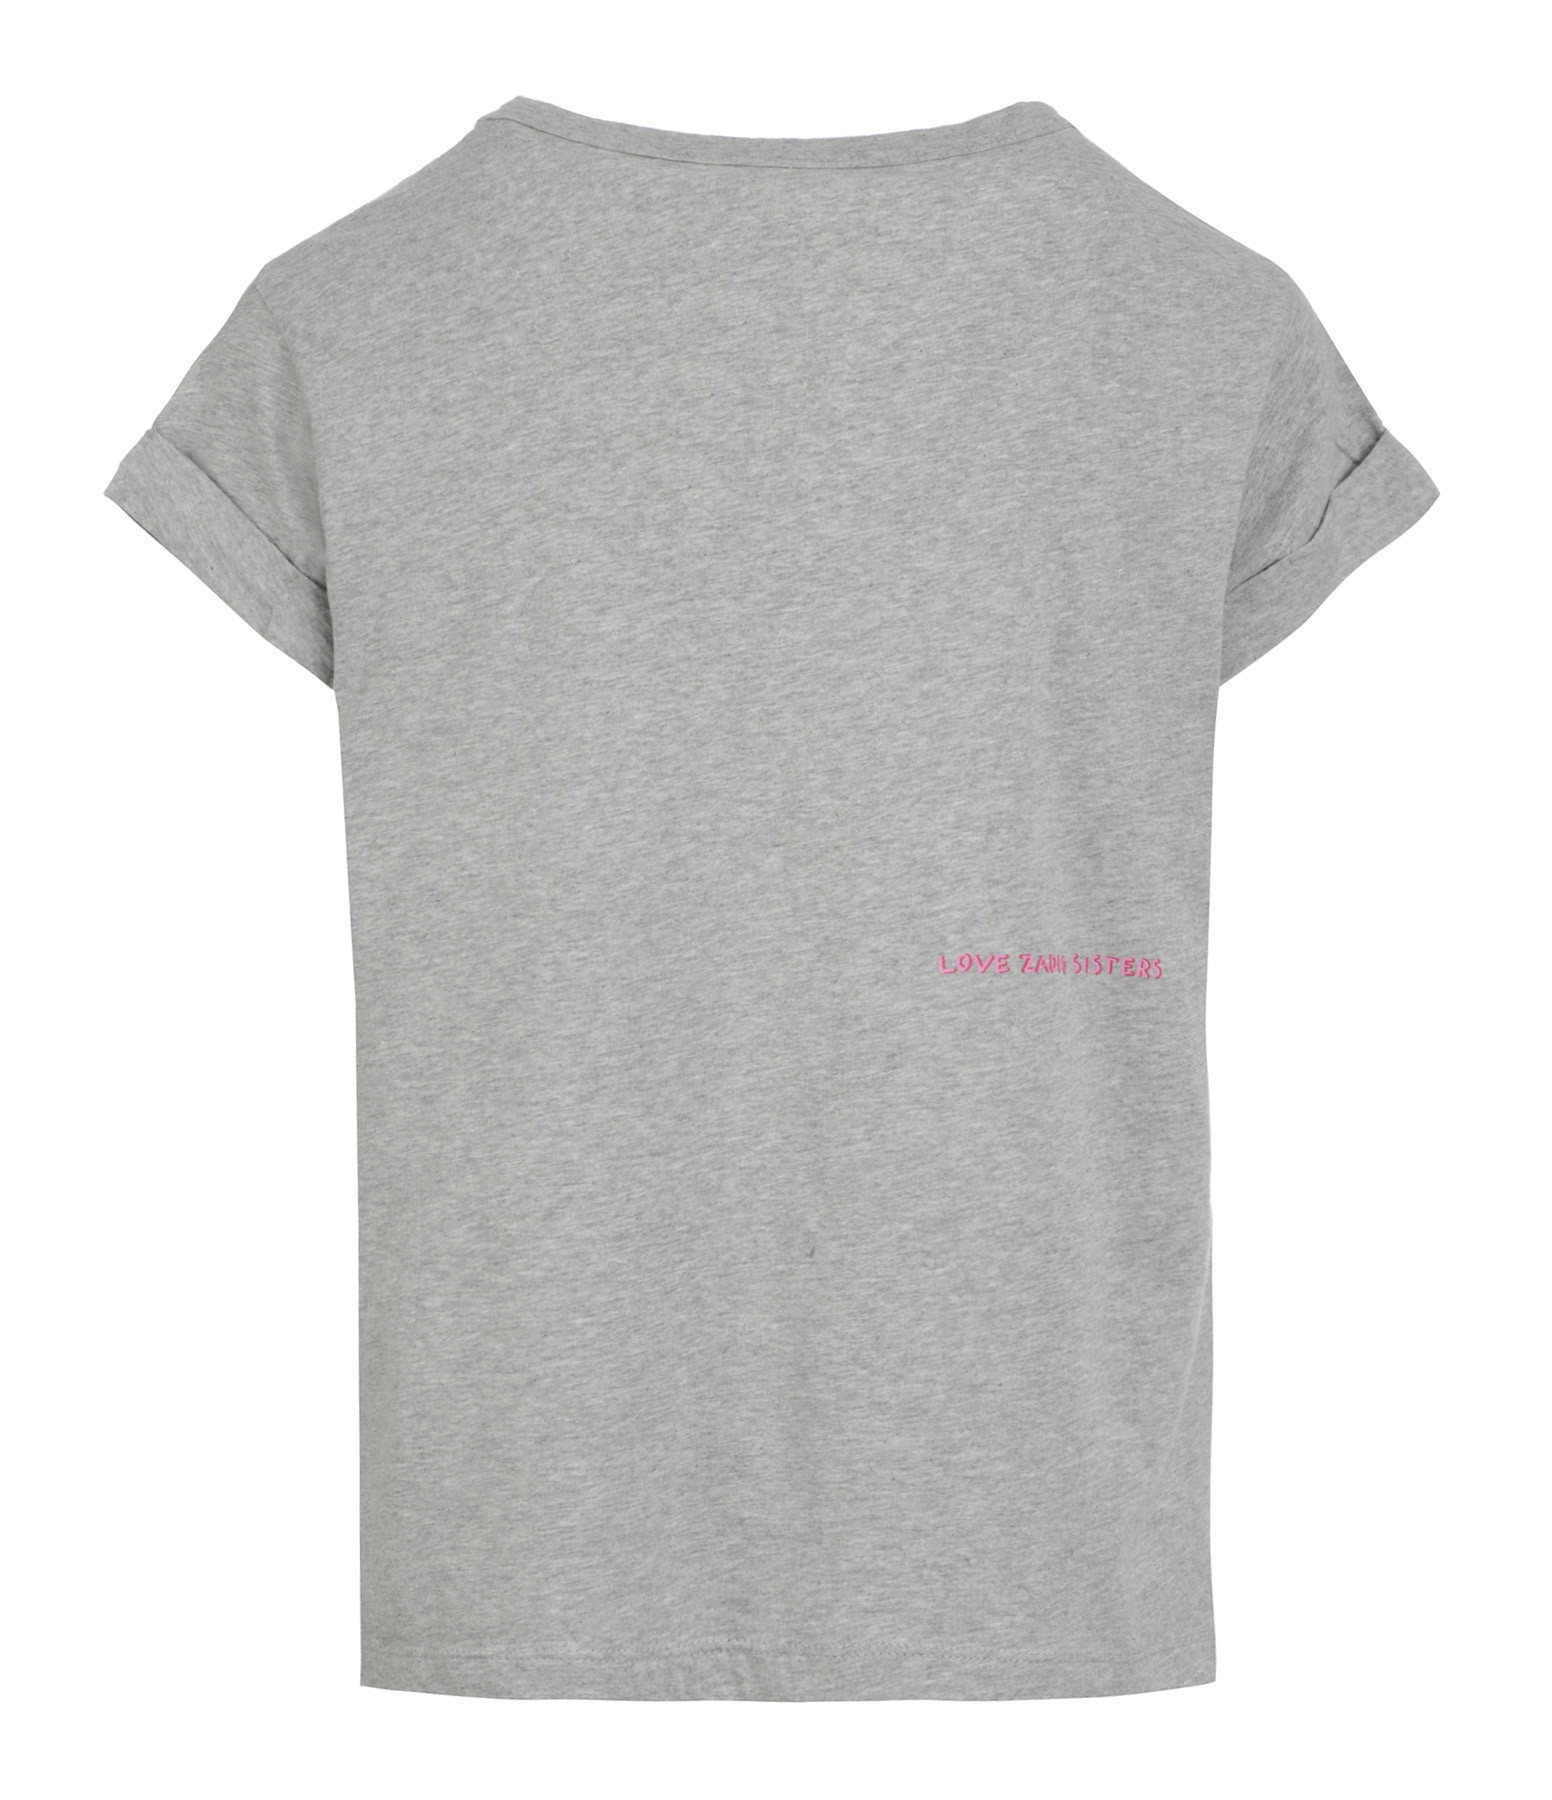 ZADIG & VOLTAIRE - Tee-shirt Anya Boss Coton Gris Chiné